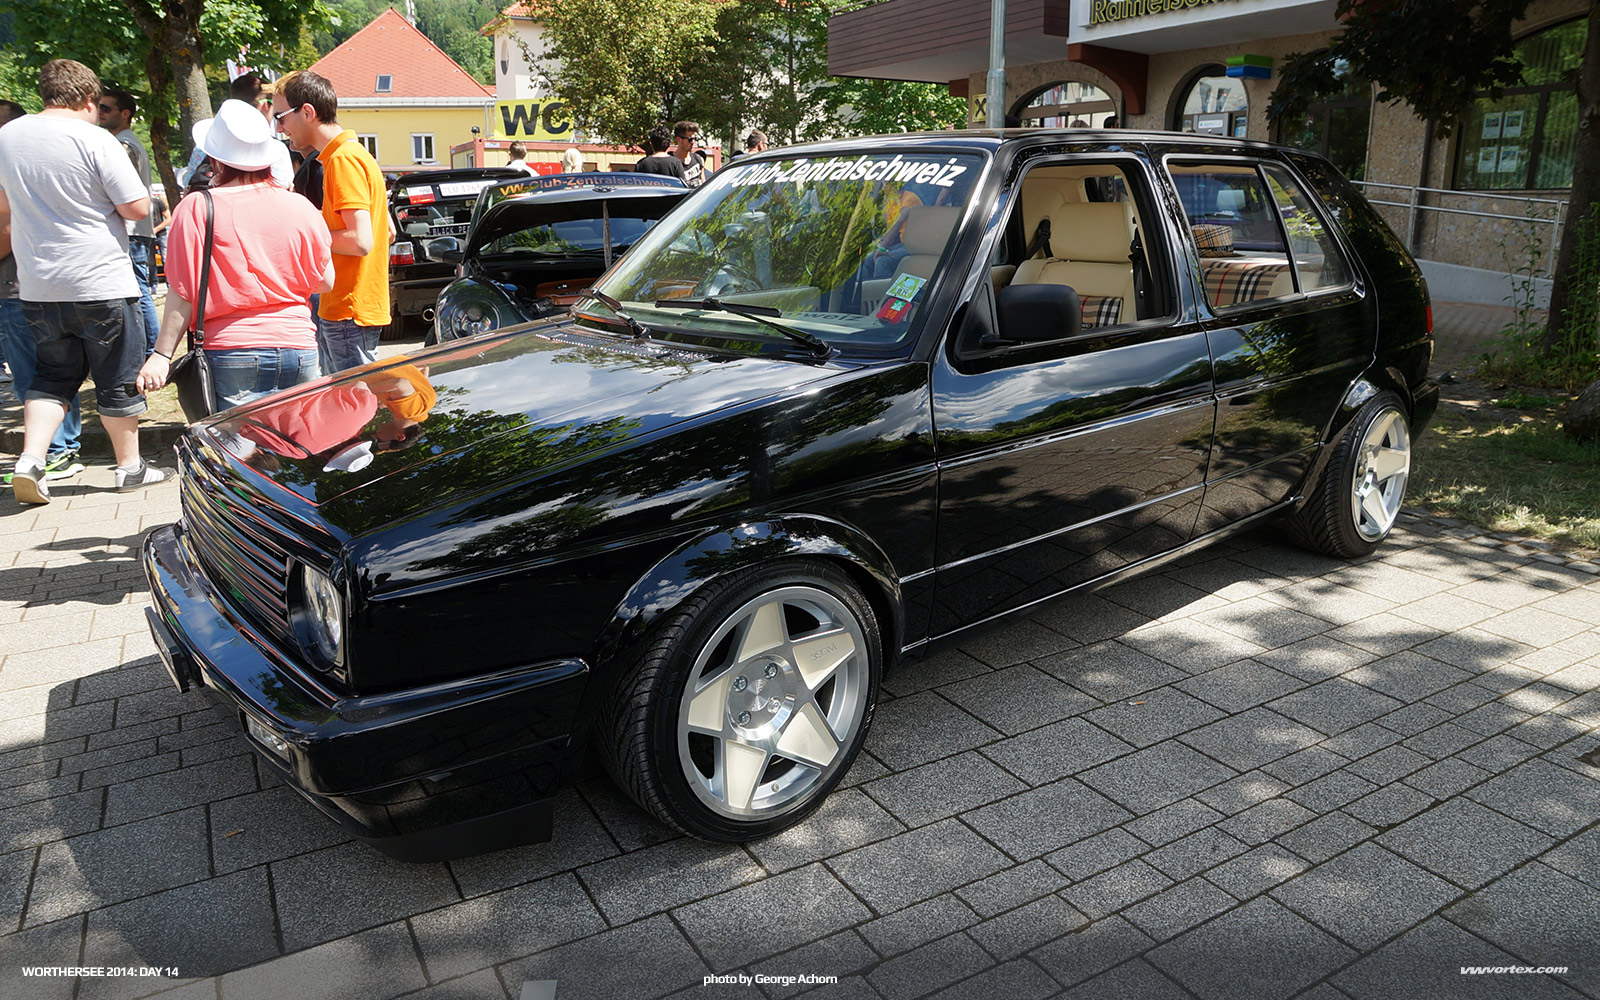 2014-Worthersee-Day-14-VWvortex-1138